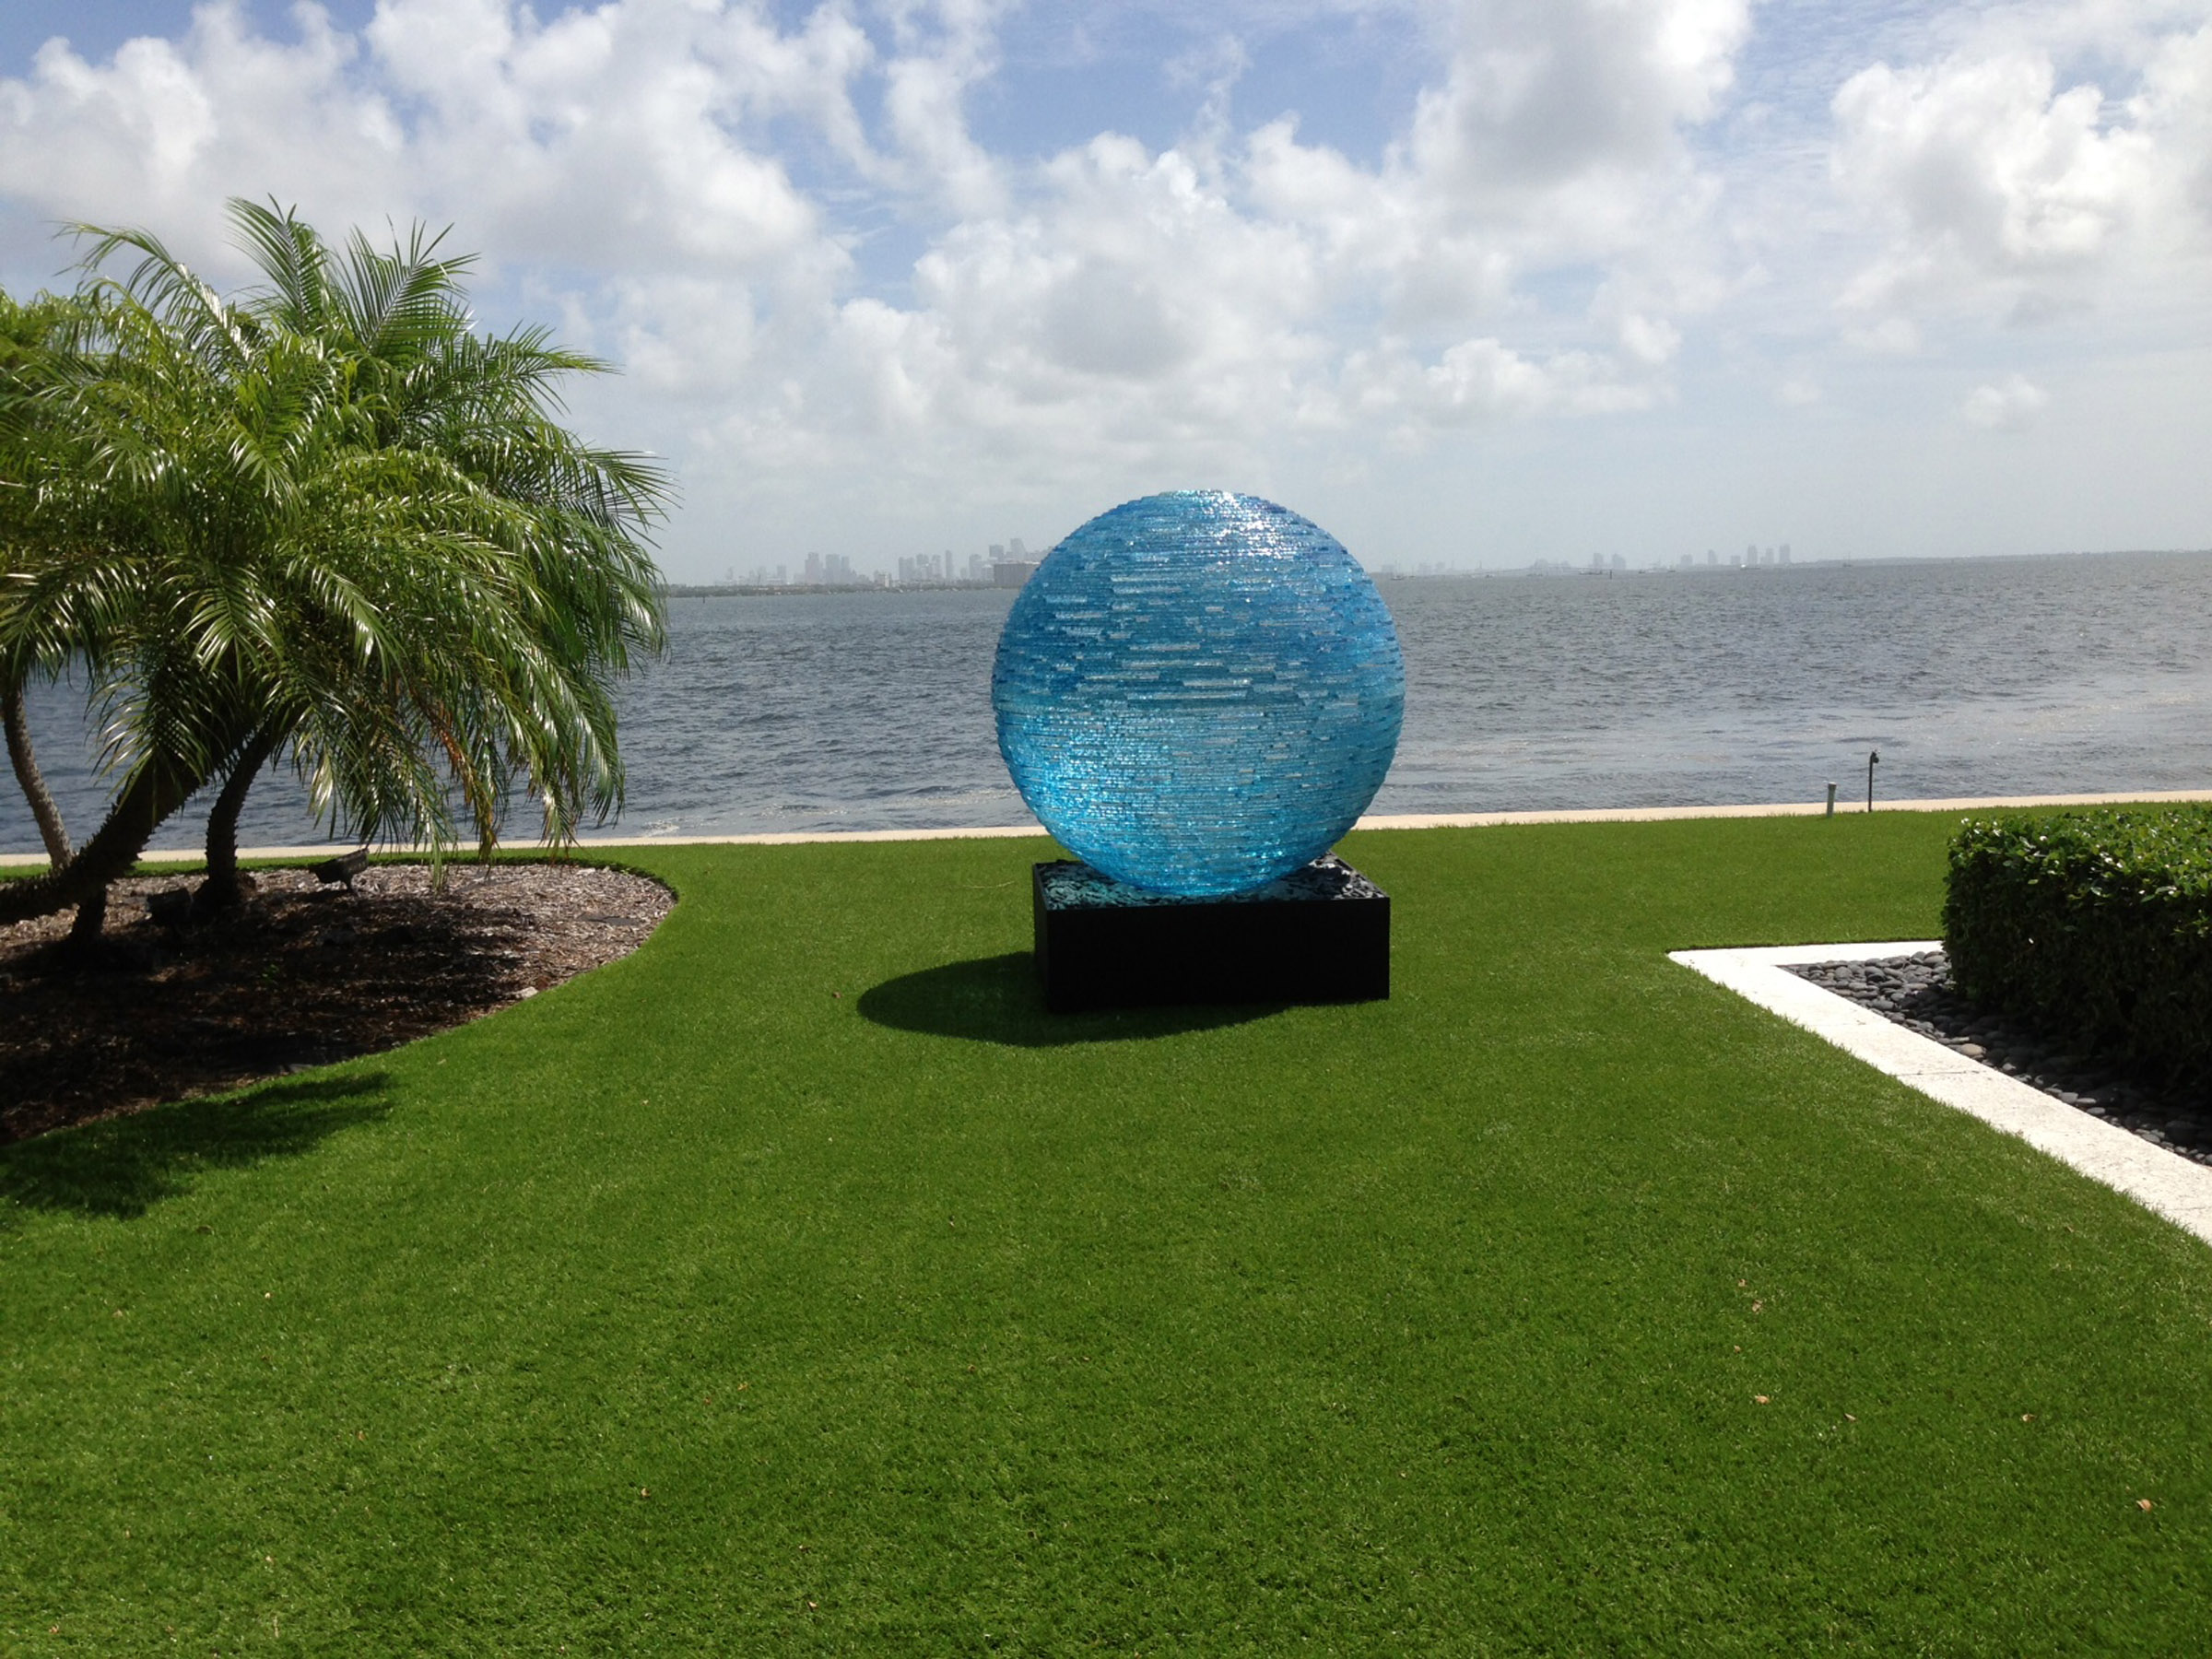 Henry-Richardson--blue-glass-orb-sculpture-by-the-sea-in-garden-landscape-setting.jpg